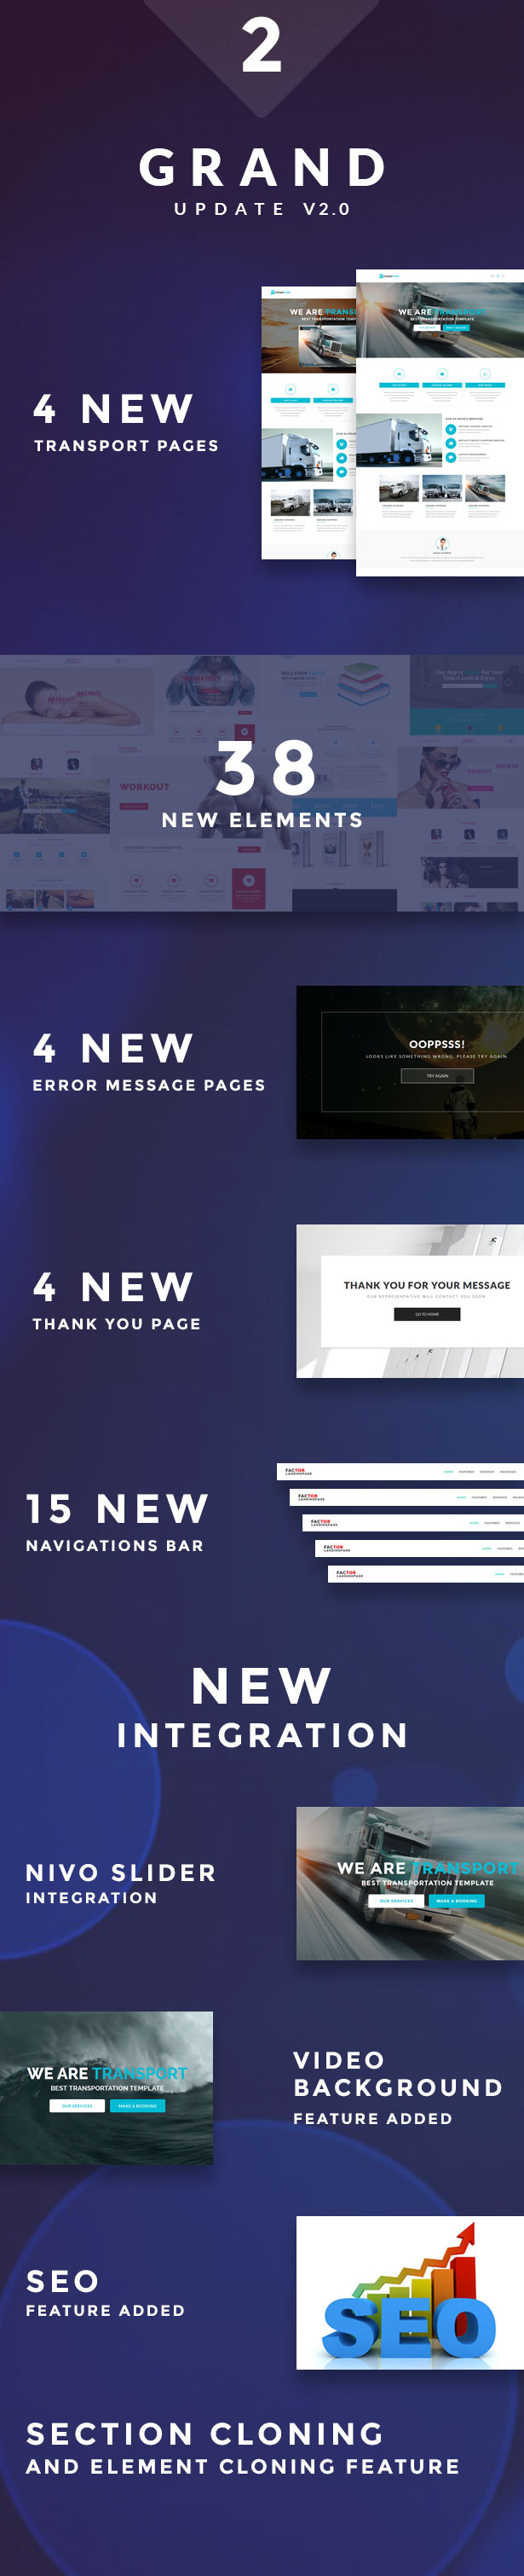 Factor - Multipurpose Landing Page Template With Page Builder - 1